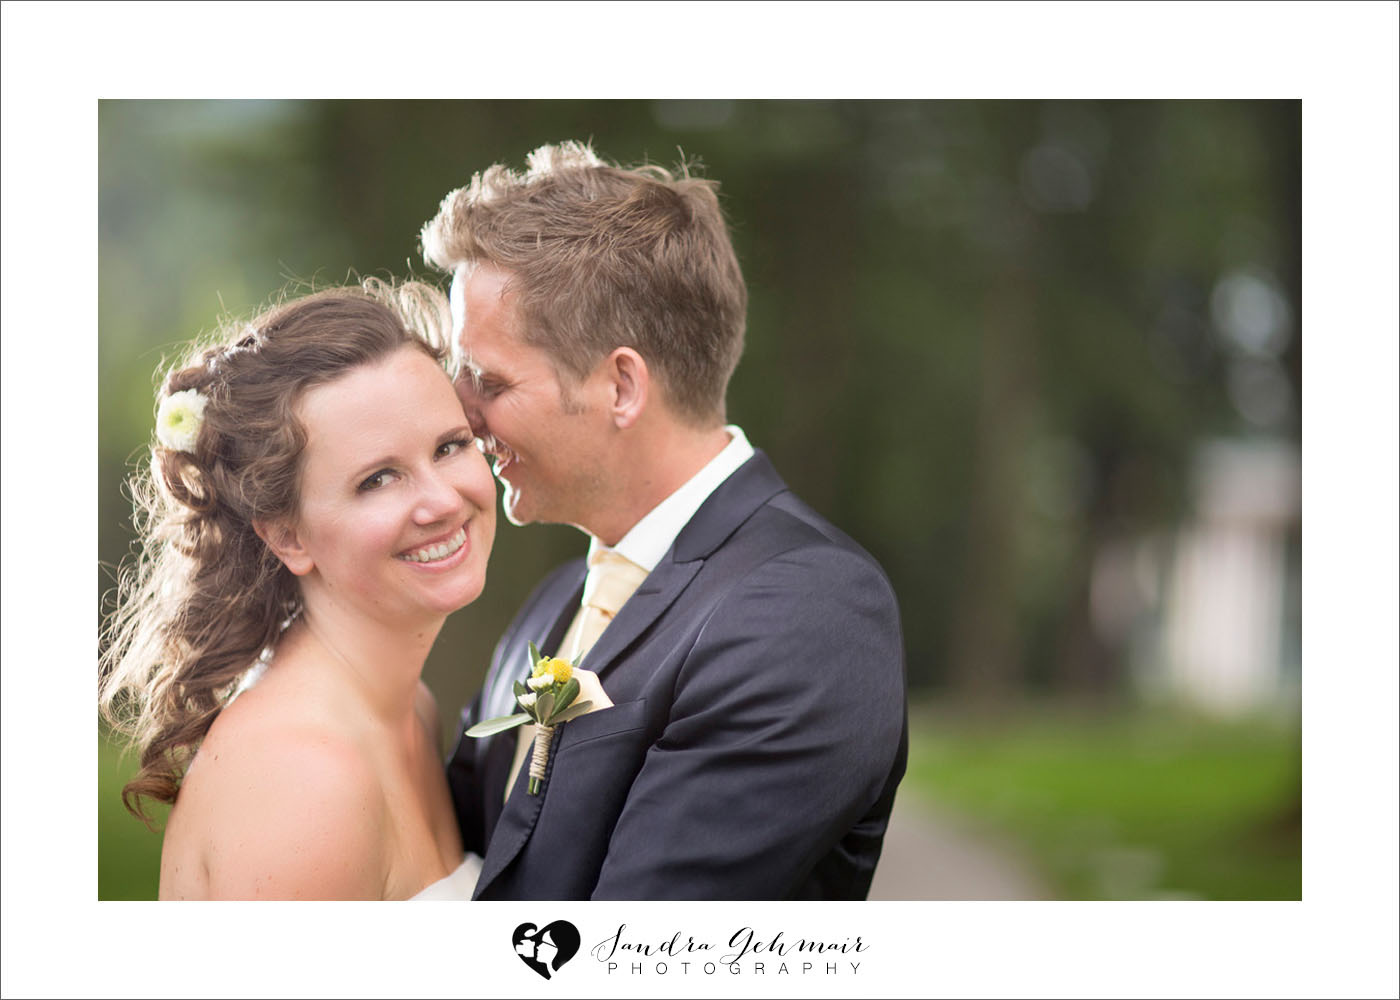 044_heiraten_am_see_spitzvilla_sandra_gehmair